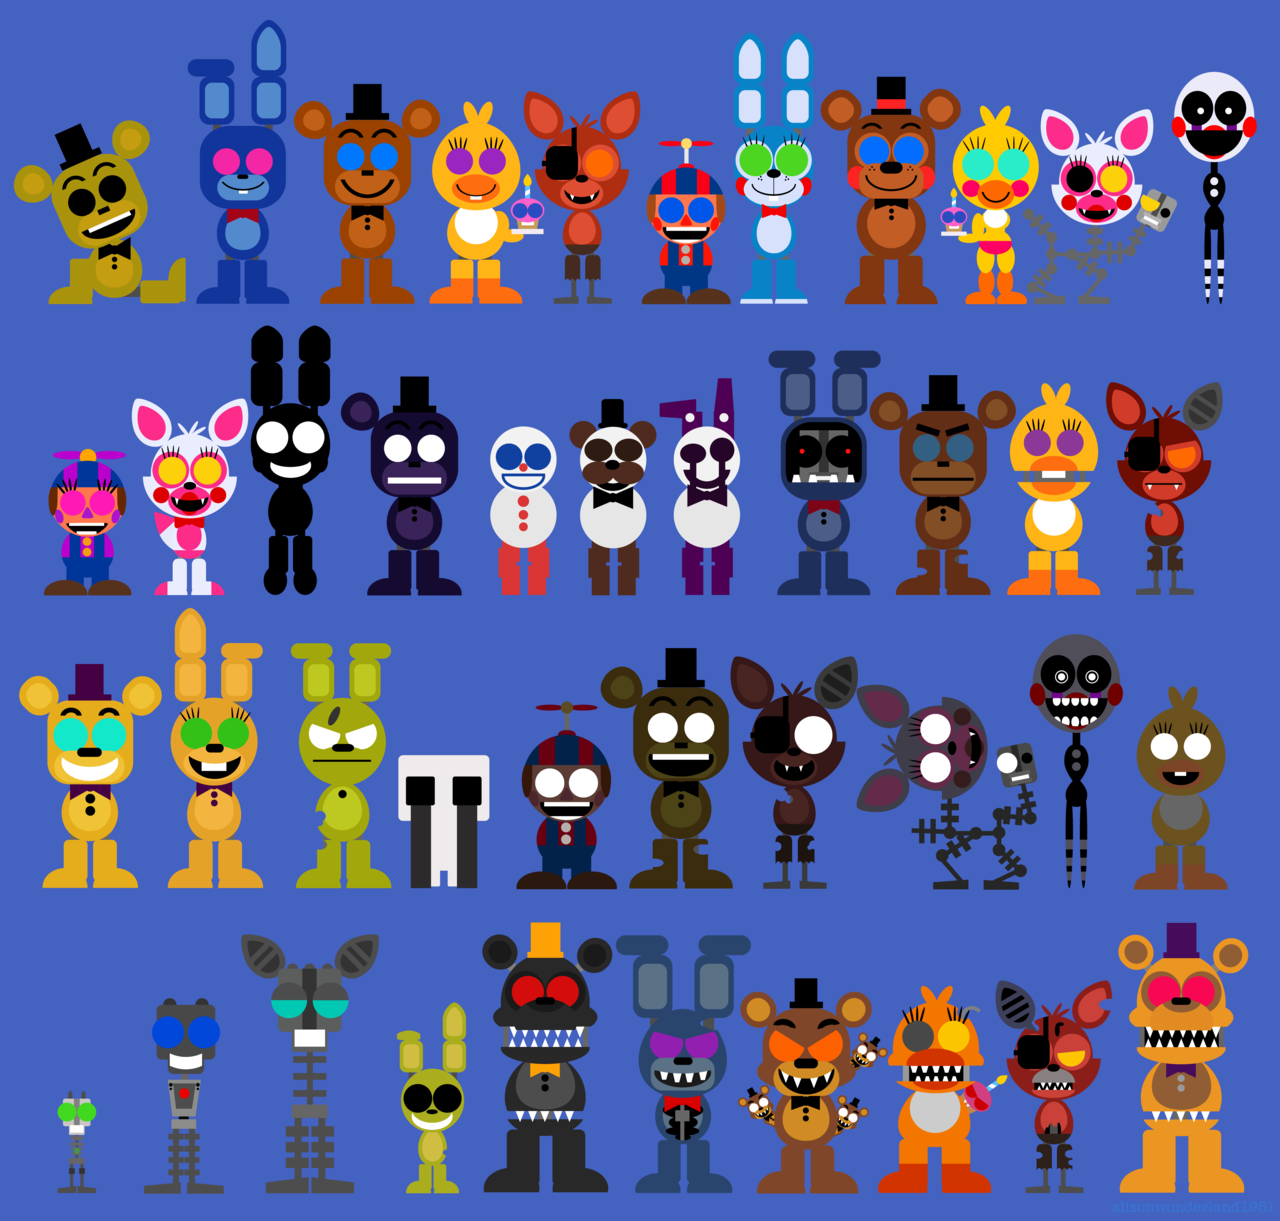 OK now I can ask my question. What you favorite fnaf game!